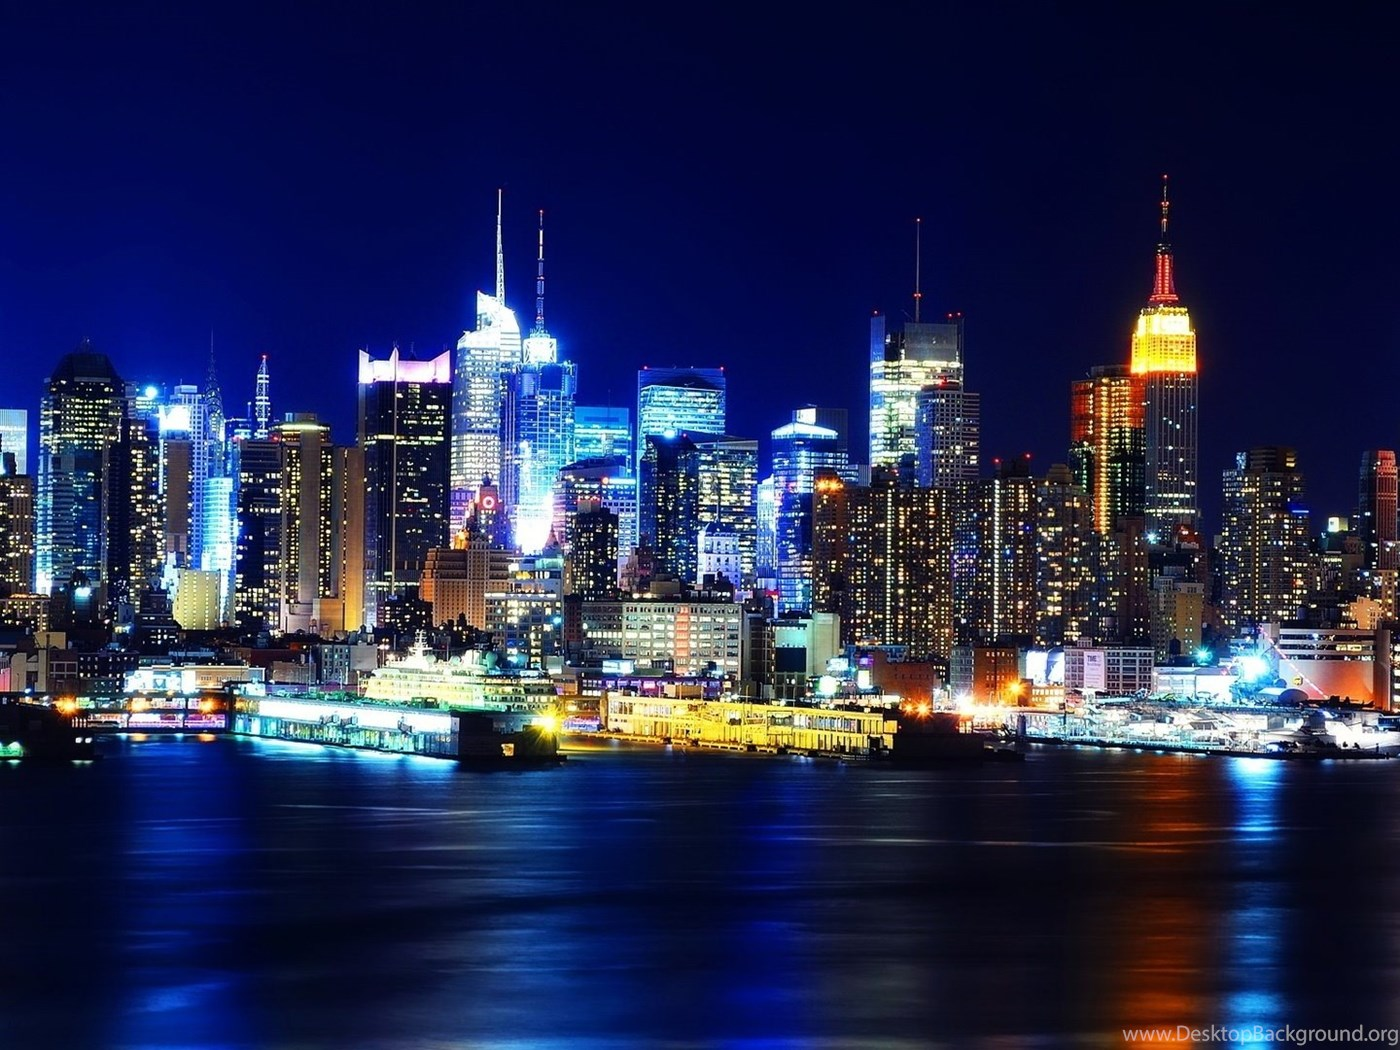 New York City At Night Wallpapers Hd Wallpaper Backgrounds